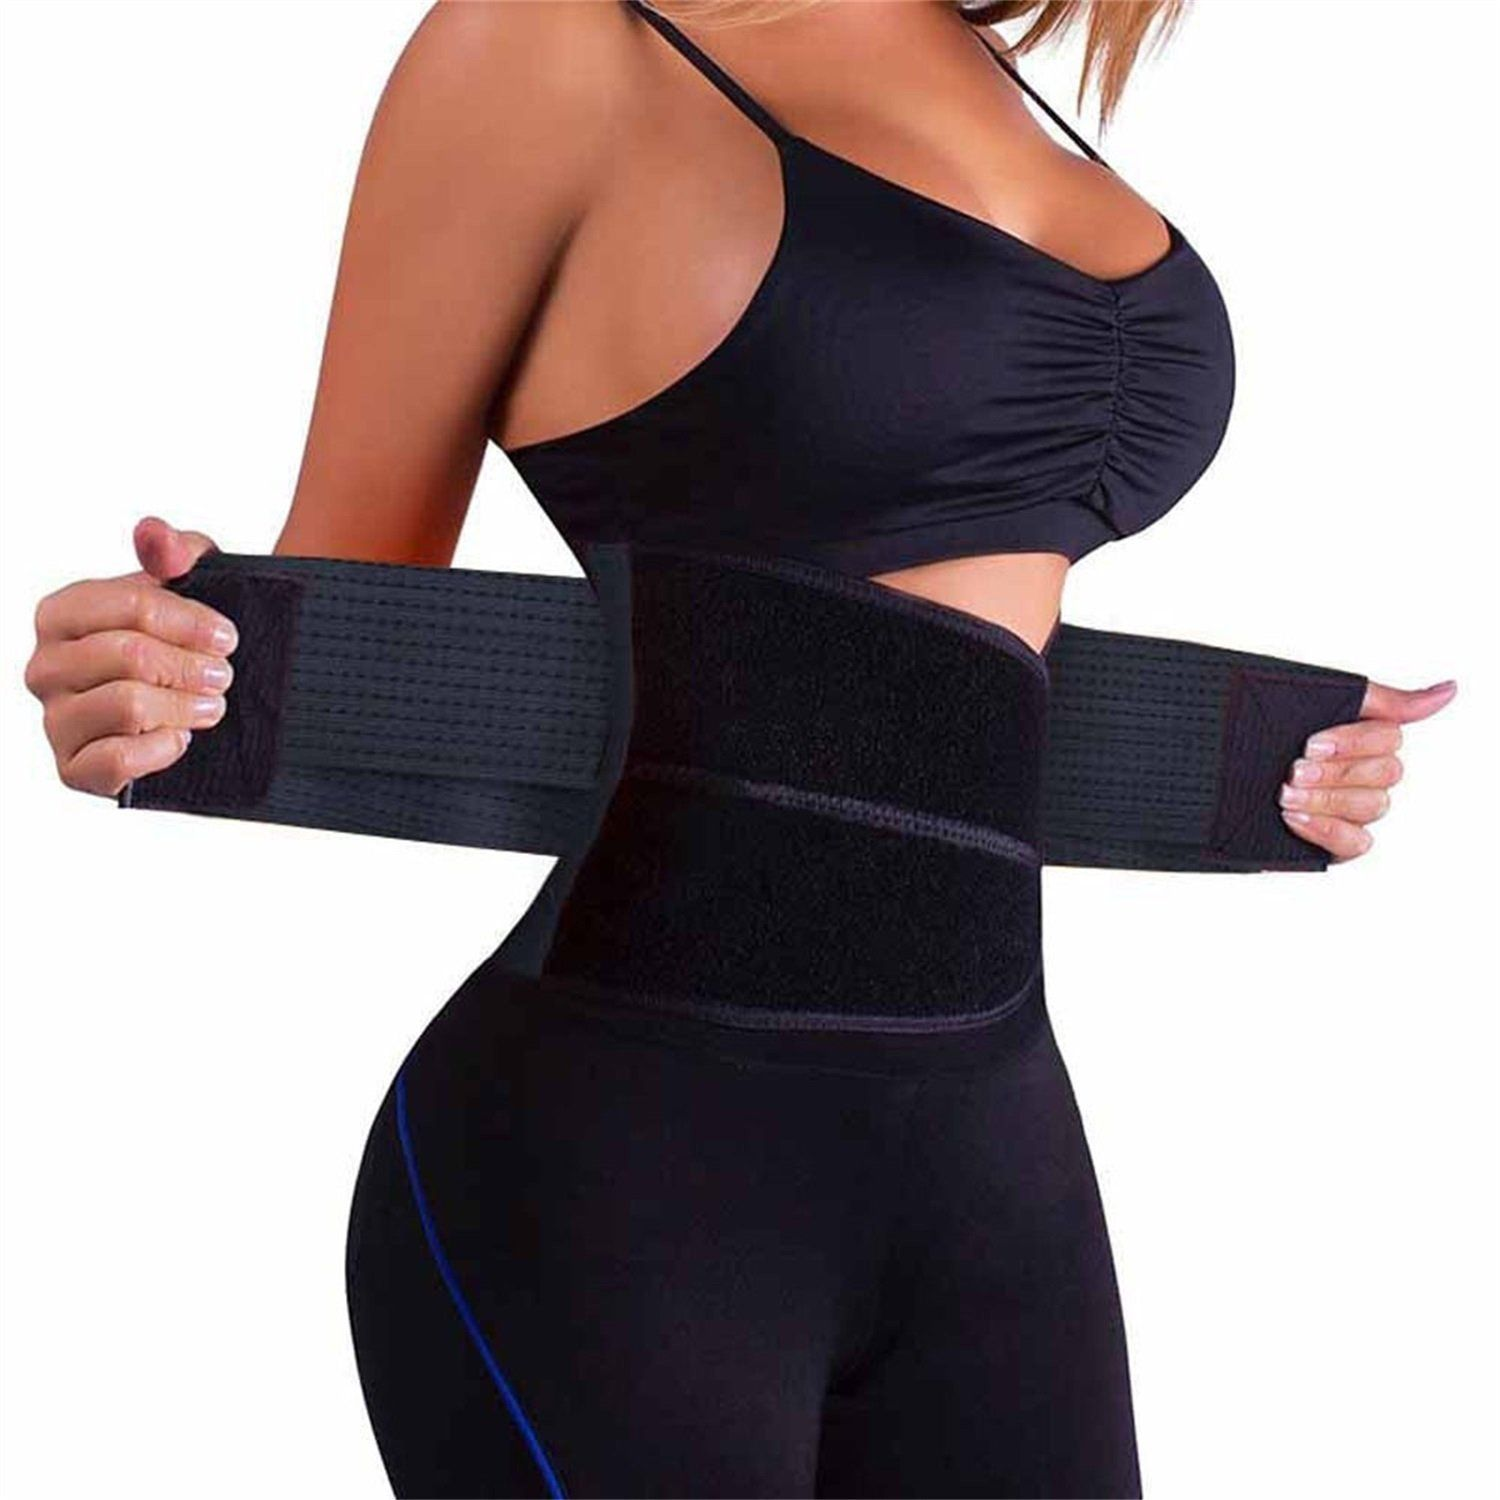 Shapewear For Women Best Shapewear For Fupa Saree Body Shaper Corset To Shrink Waist Flat Tummy Waist Trainer